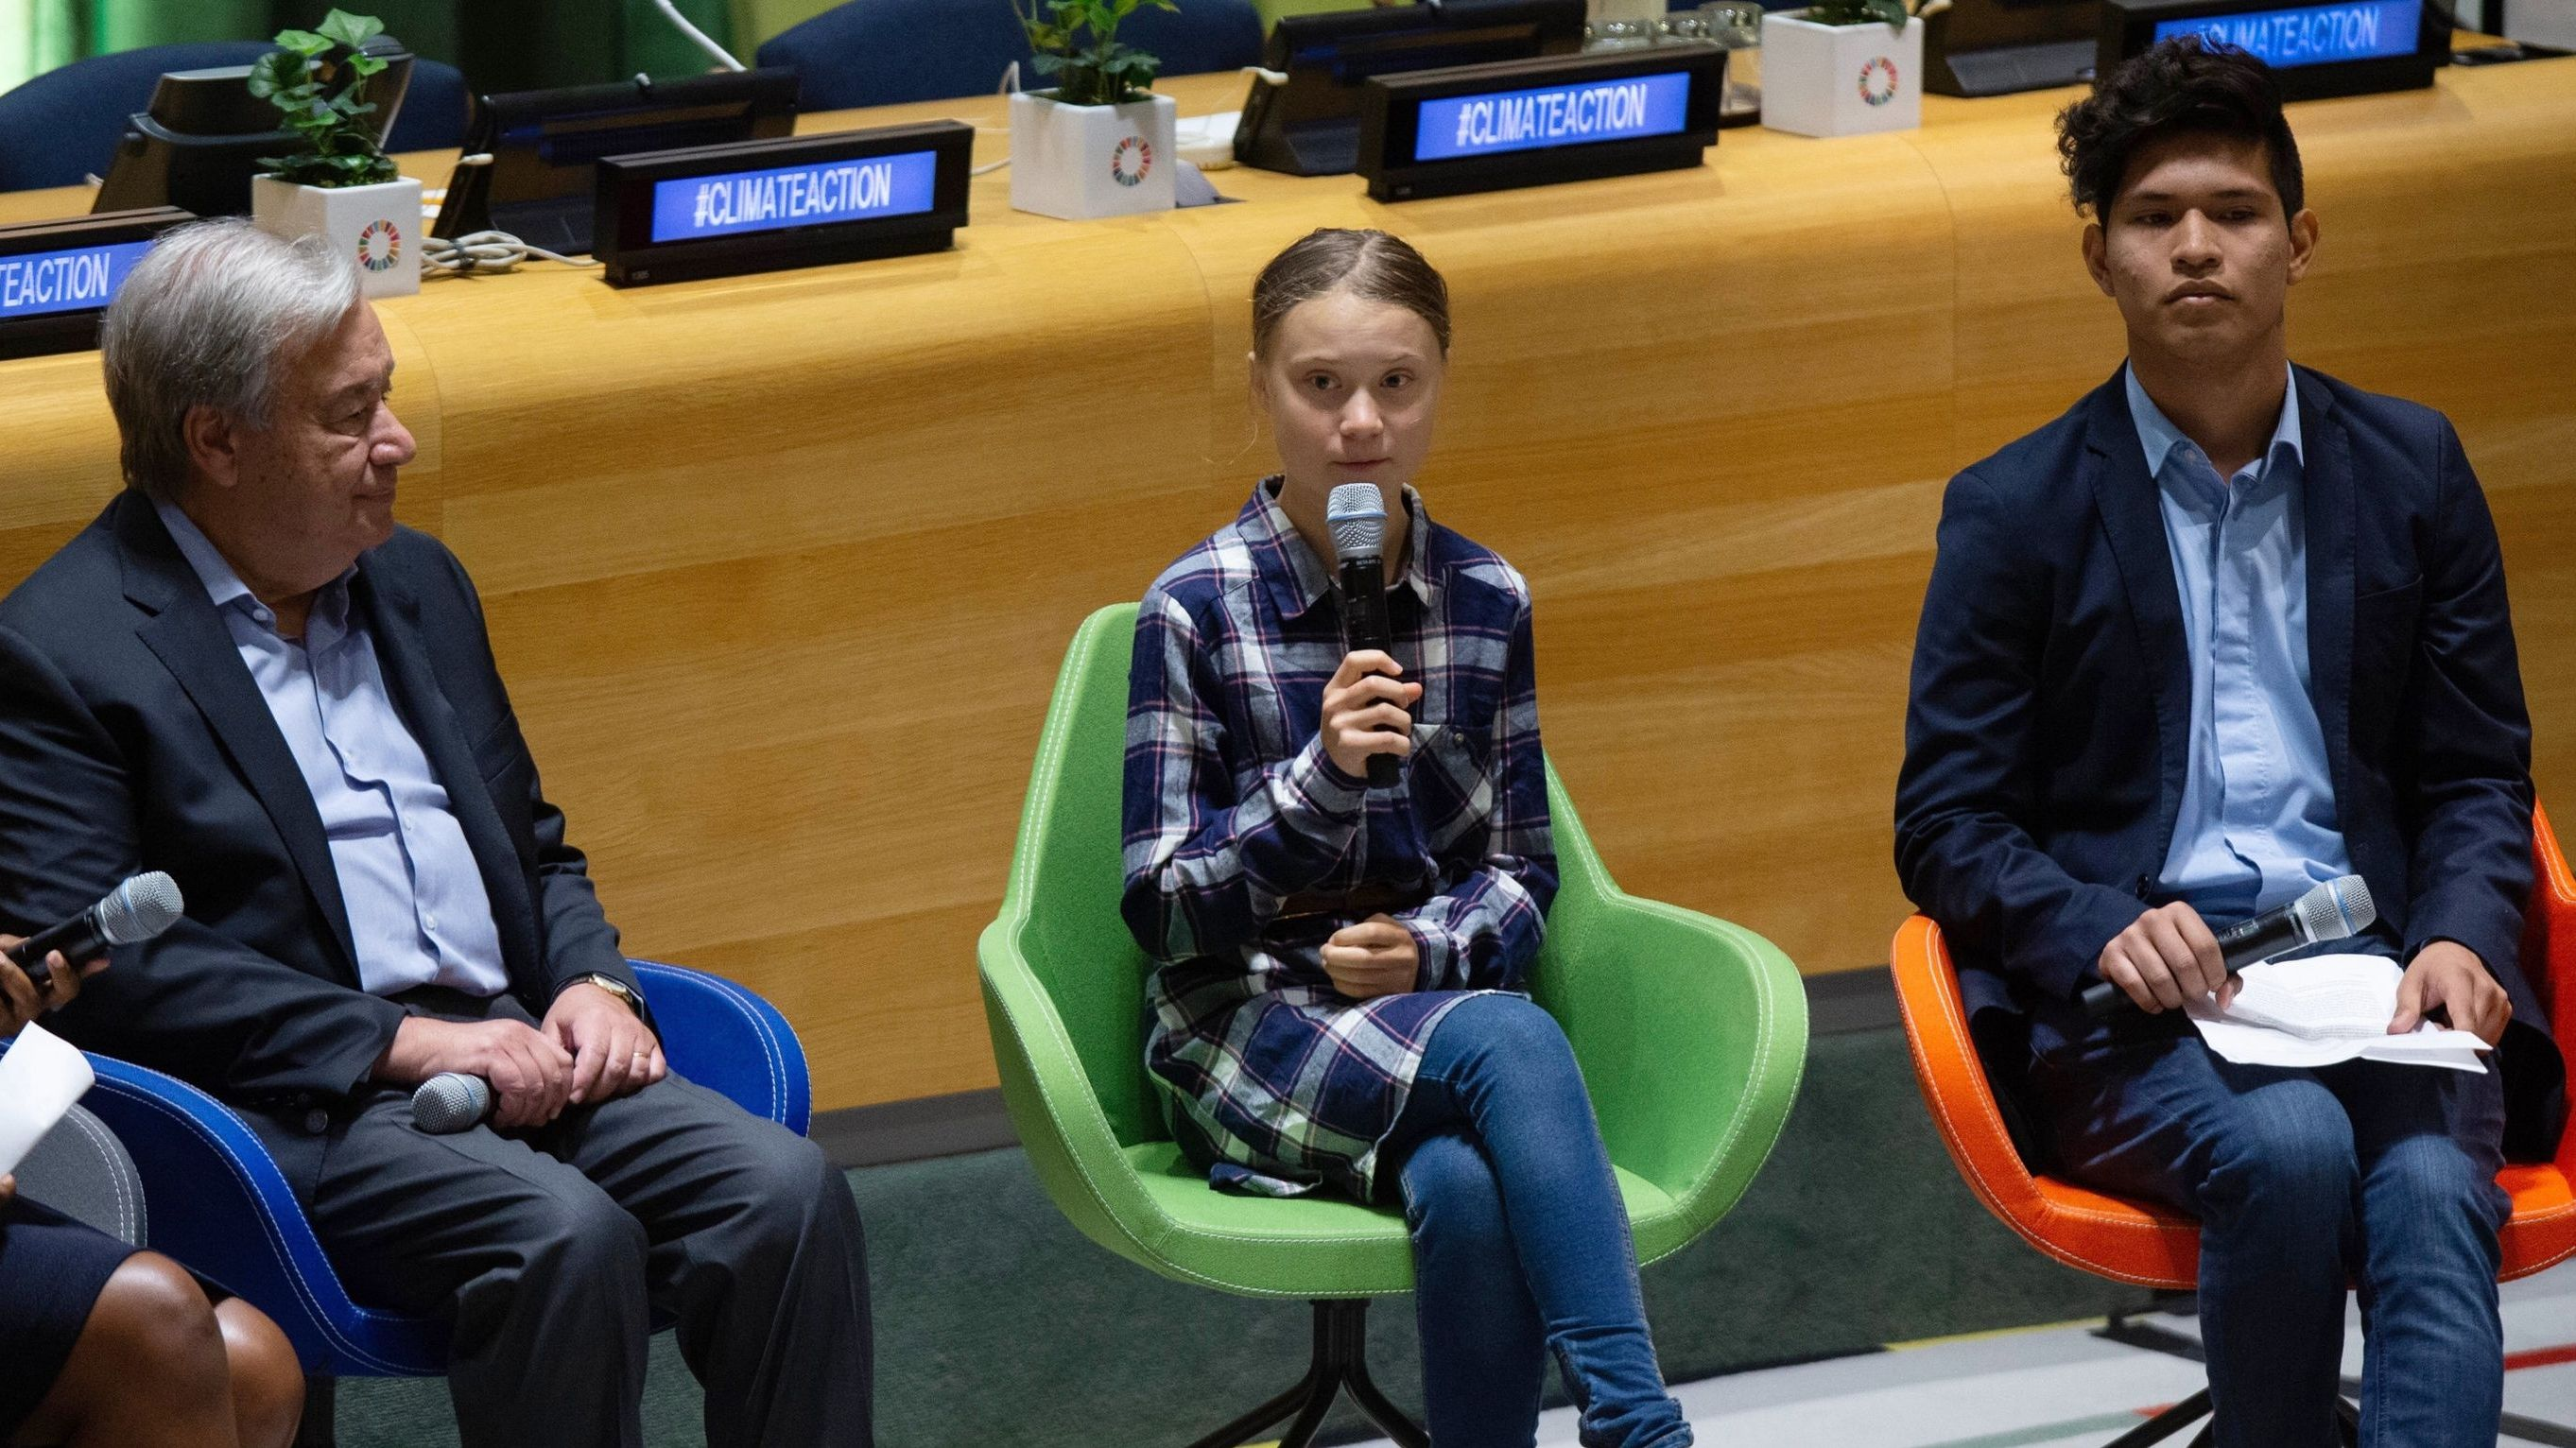 Greta Thunberg beim UN-Jugendklimagipfel in New York